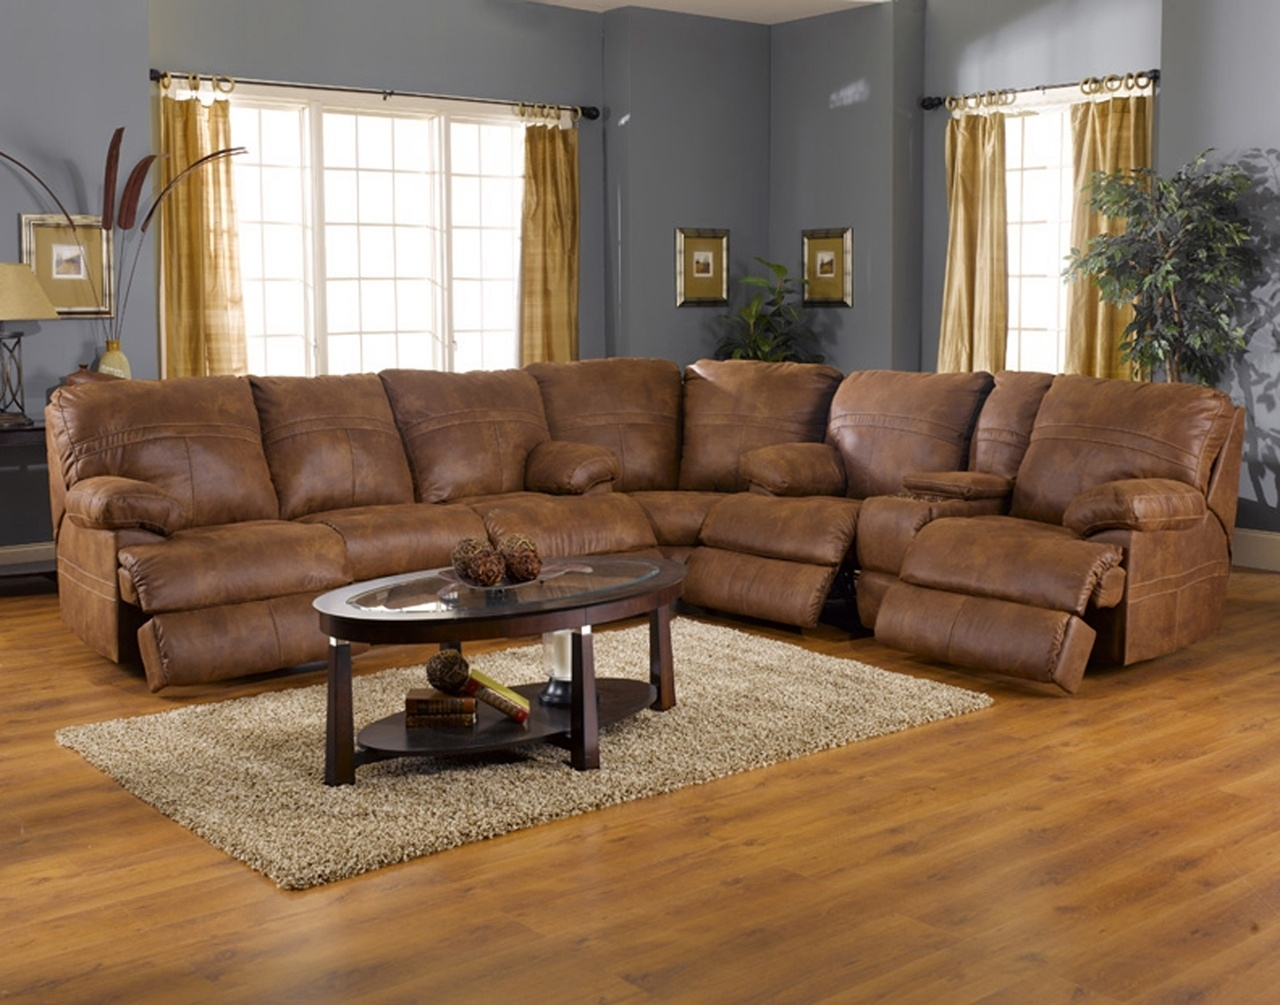 Elegant Leather Sectional Sofa With Recliner 89 Office Sofa Ideas Throughout Leather Recliner Sectional Sofas (Image 6 of 10)